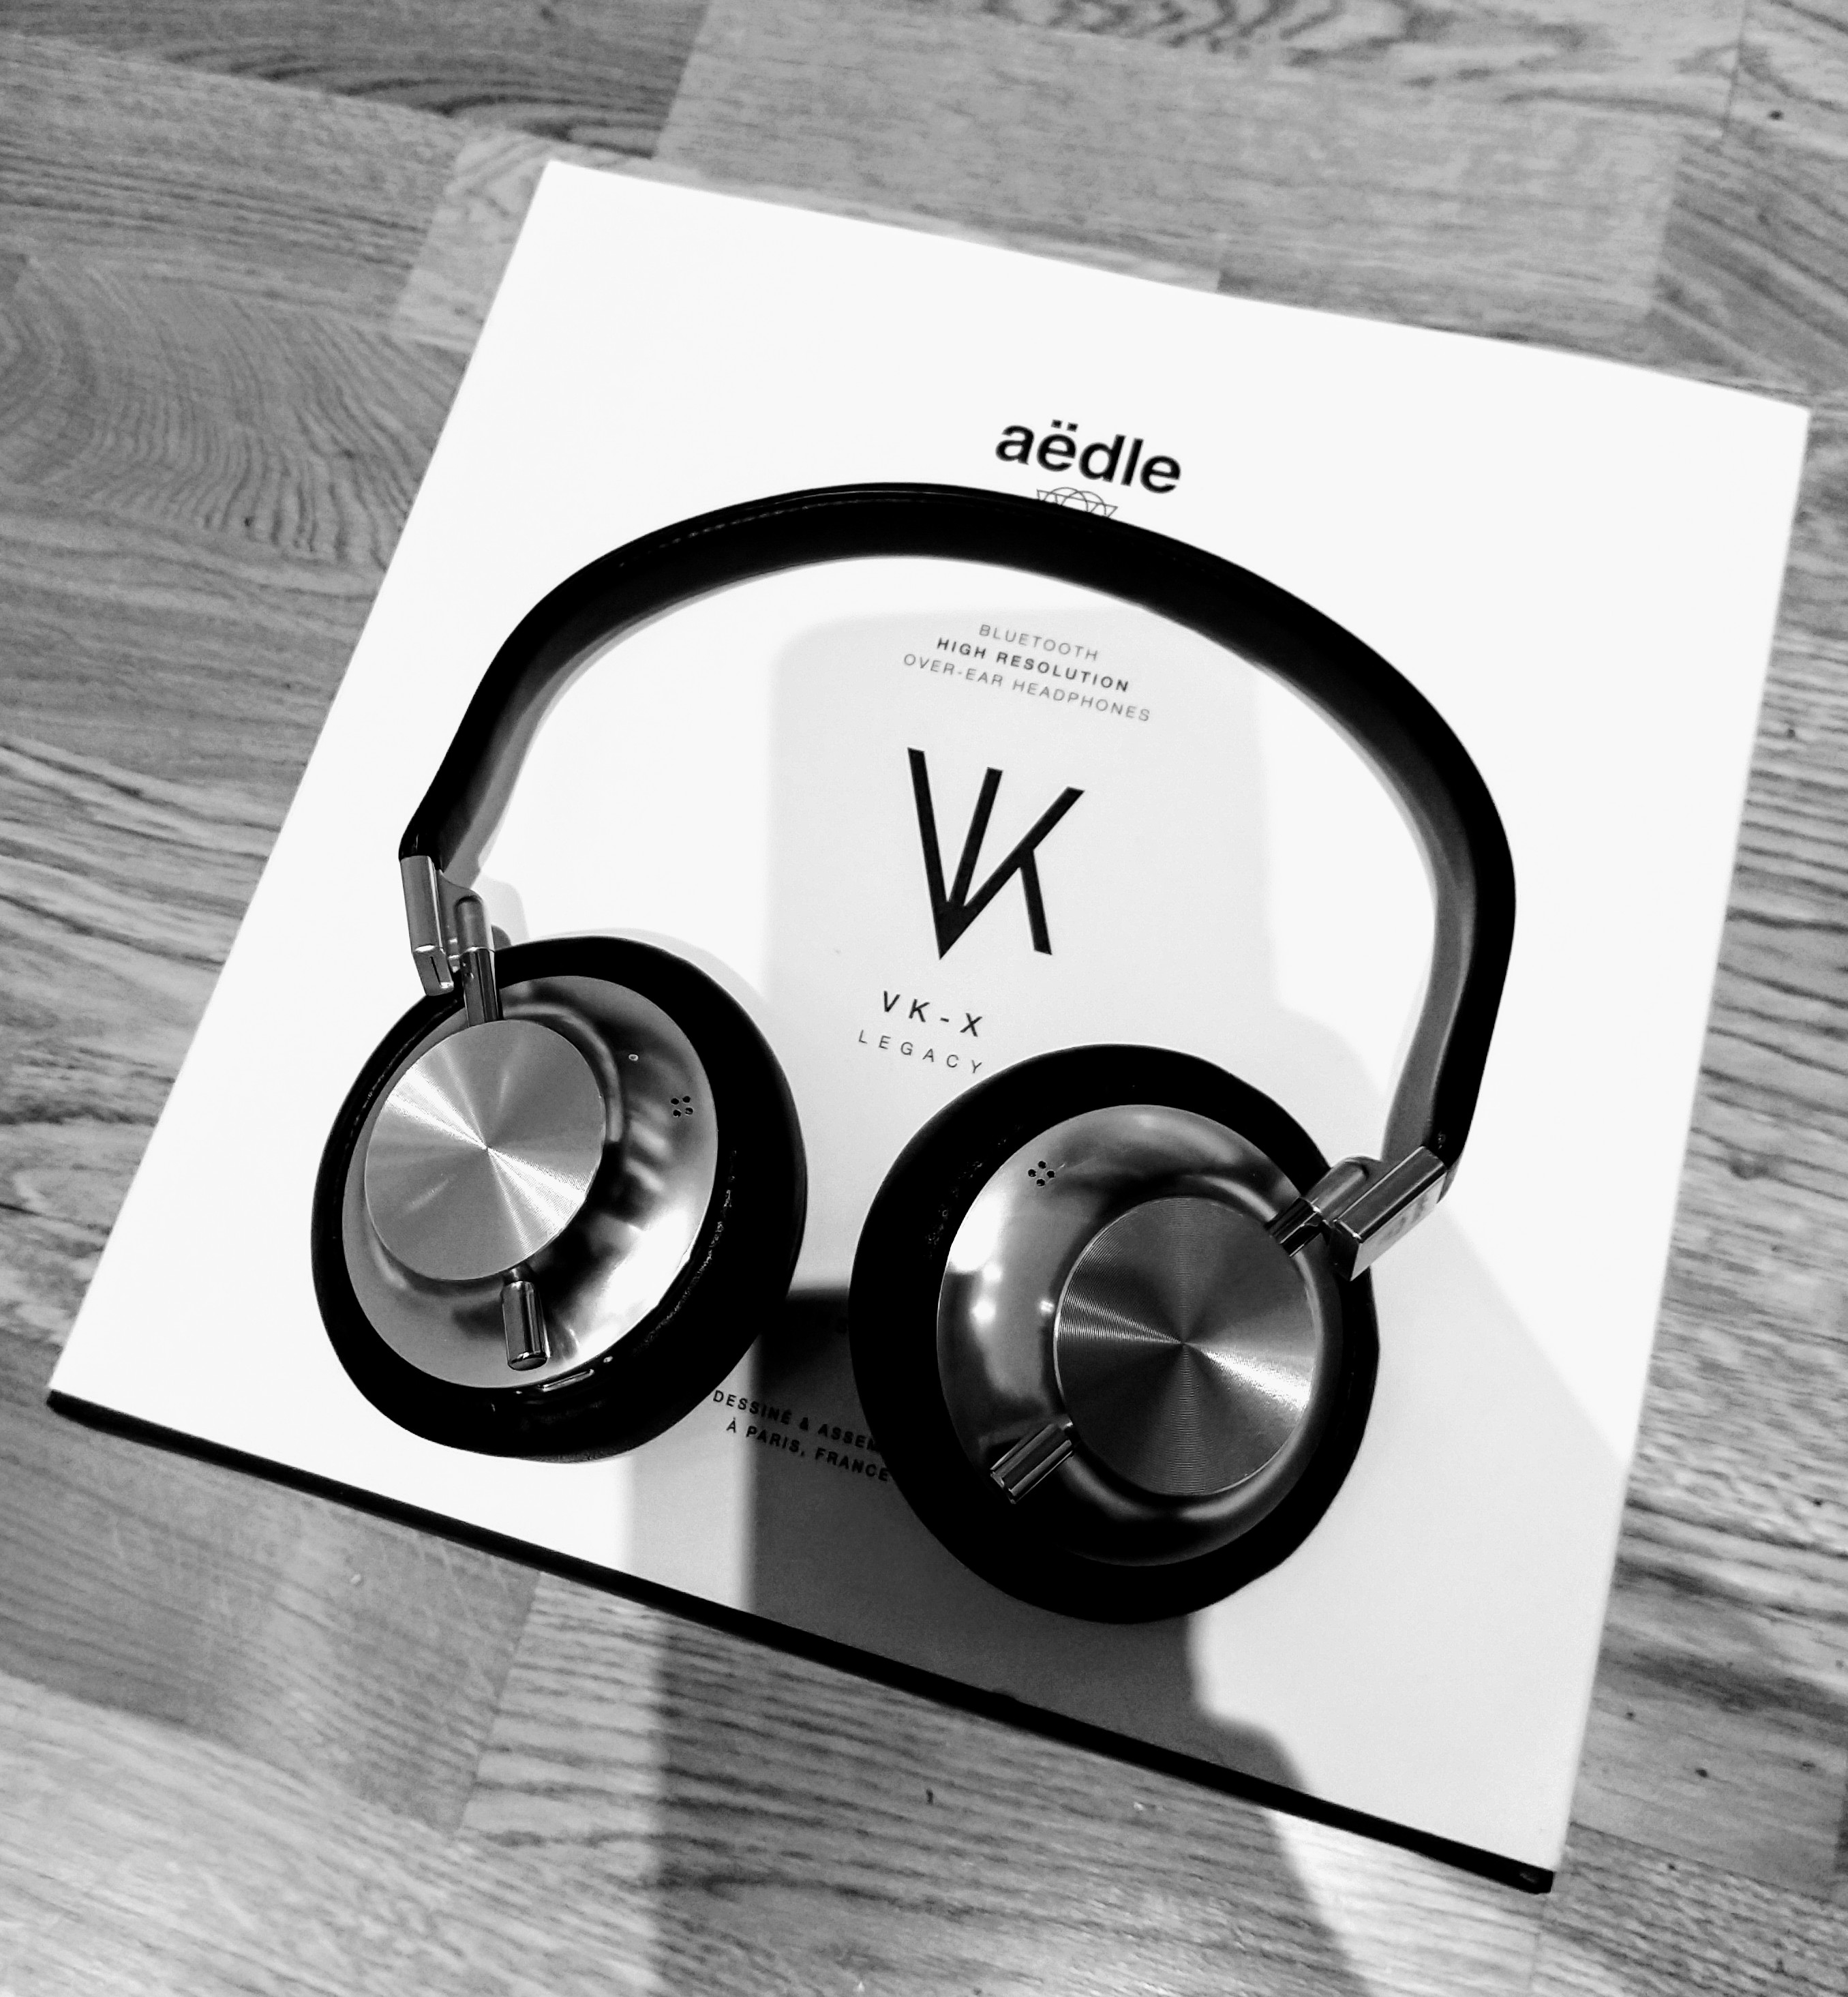 Aedle VK-X Wireless 2019 | Headphone Reviews and Discussion